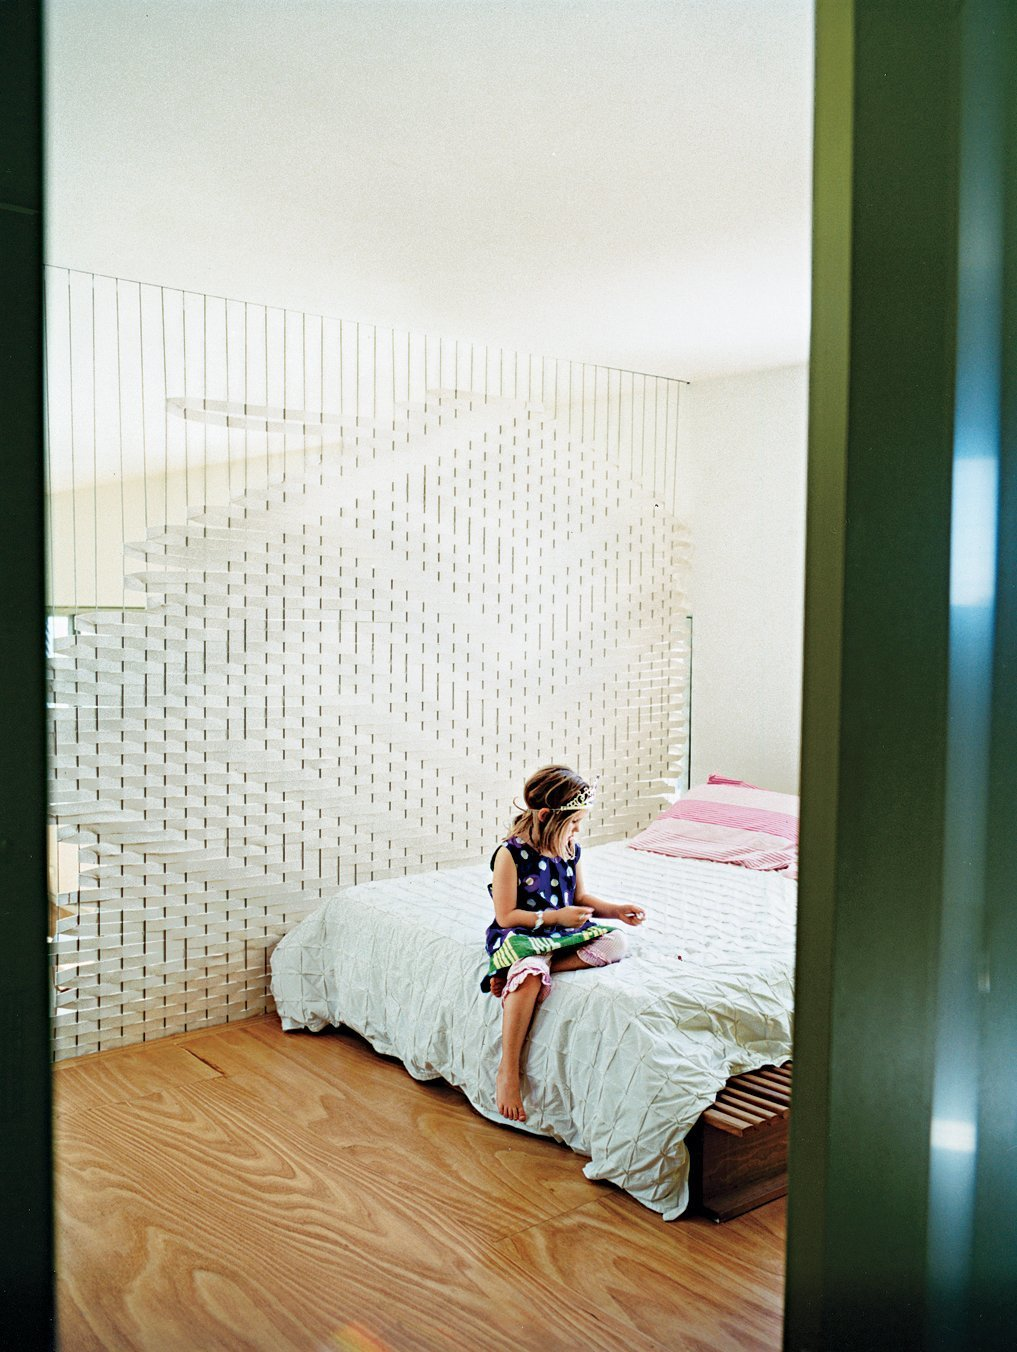 Architect-sculptor double act Cat Macleod and Michael Bellemo's Melbourne split-level home has a loft bedroom with a clever divider Macleod created out of white weaved engineering felt.